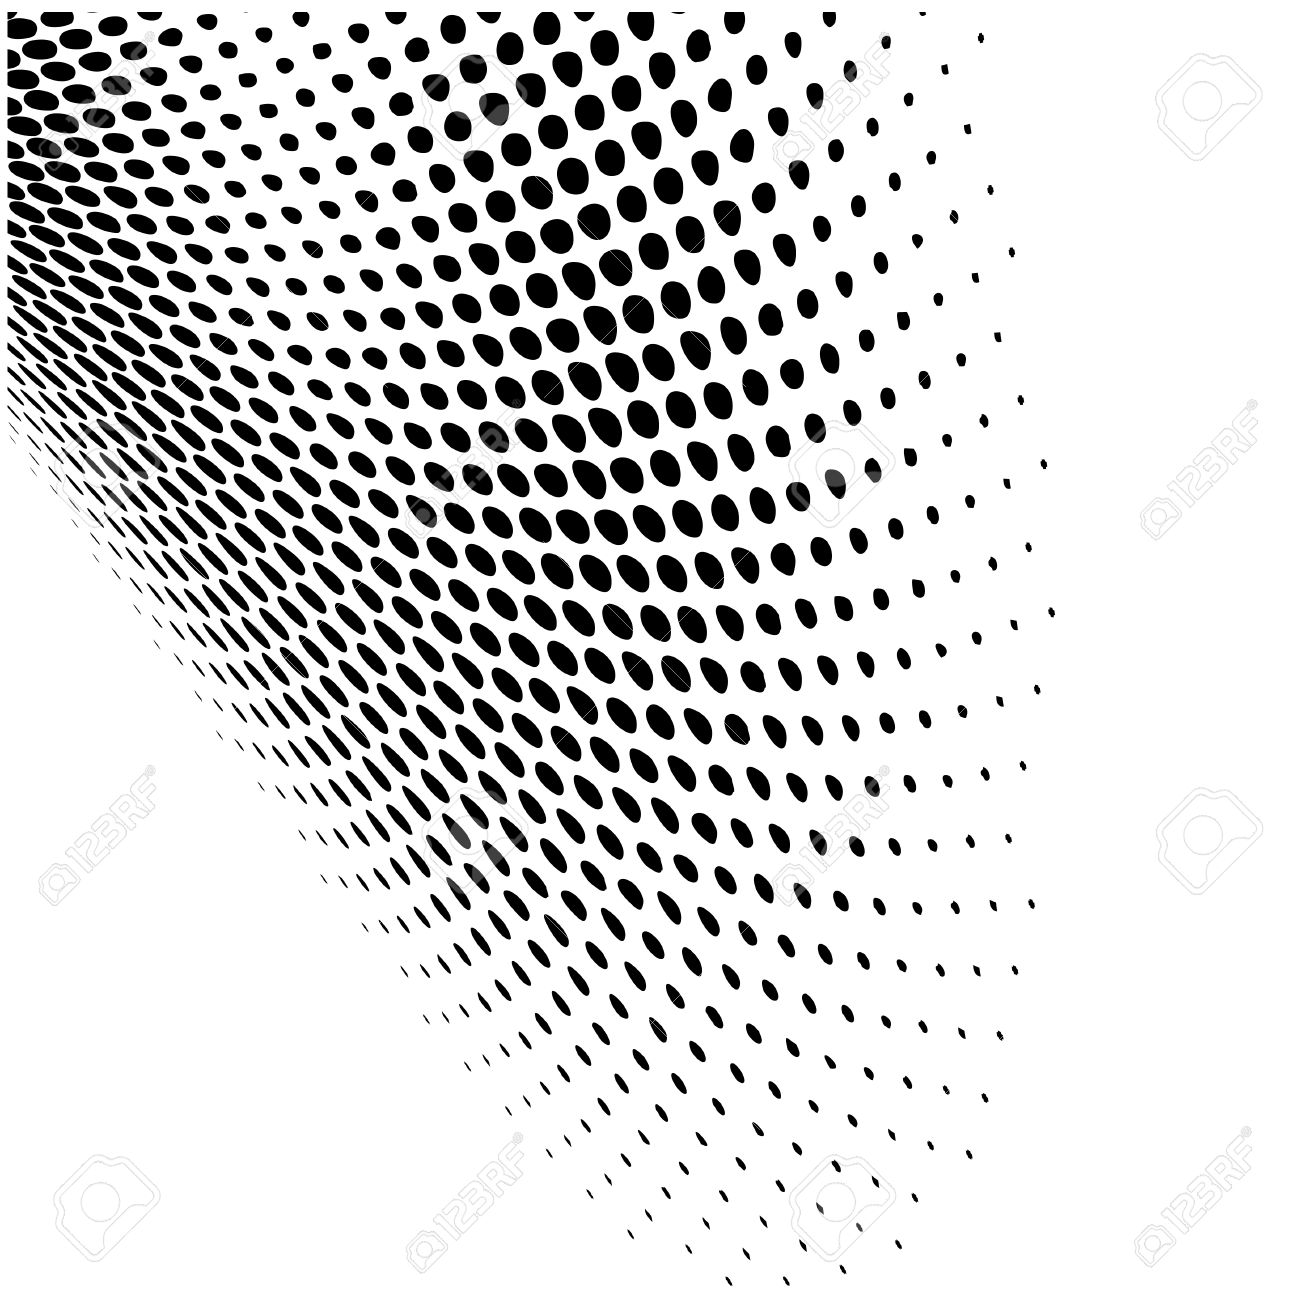 Abstract dynamic dots pattern background - 31400655